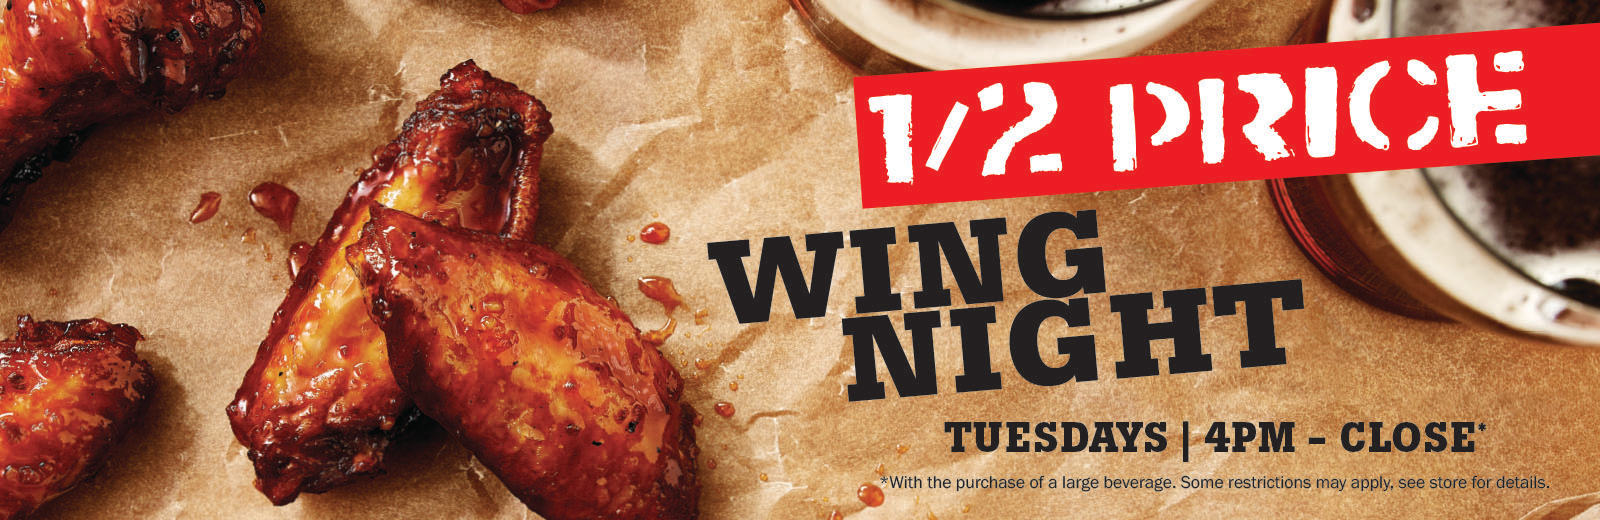 Tuesday-half-price-wings